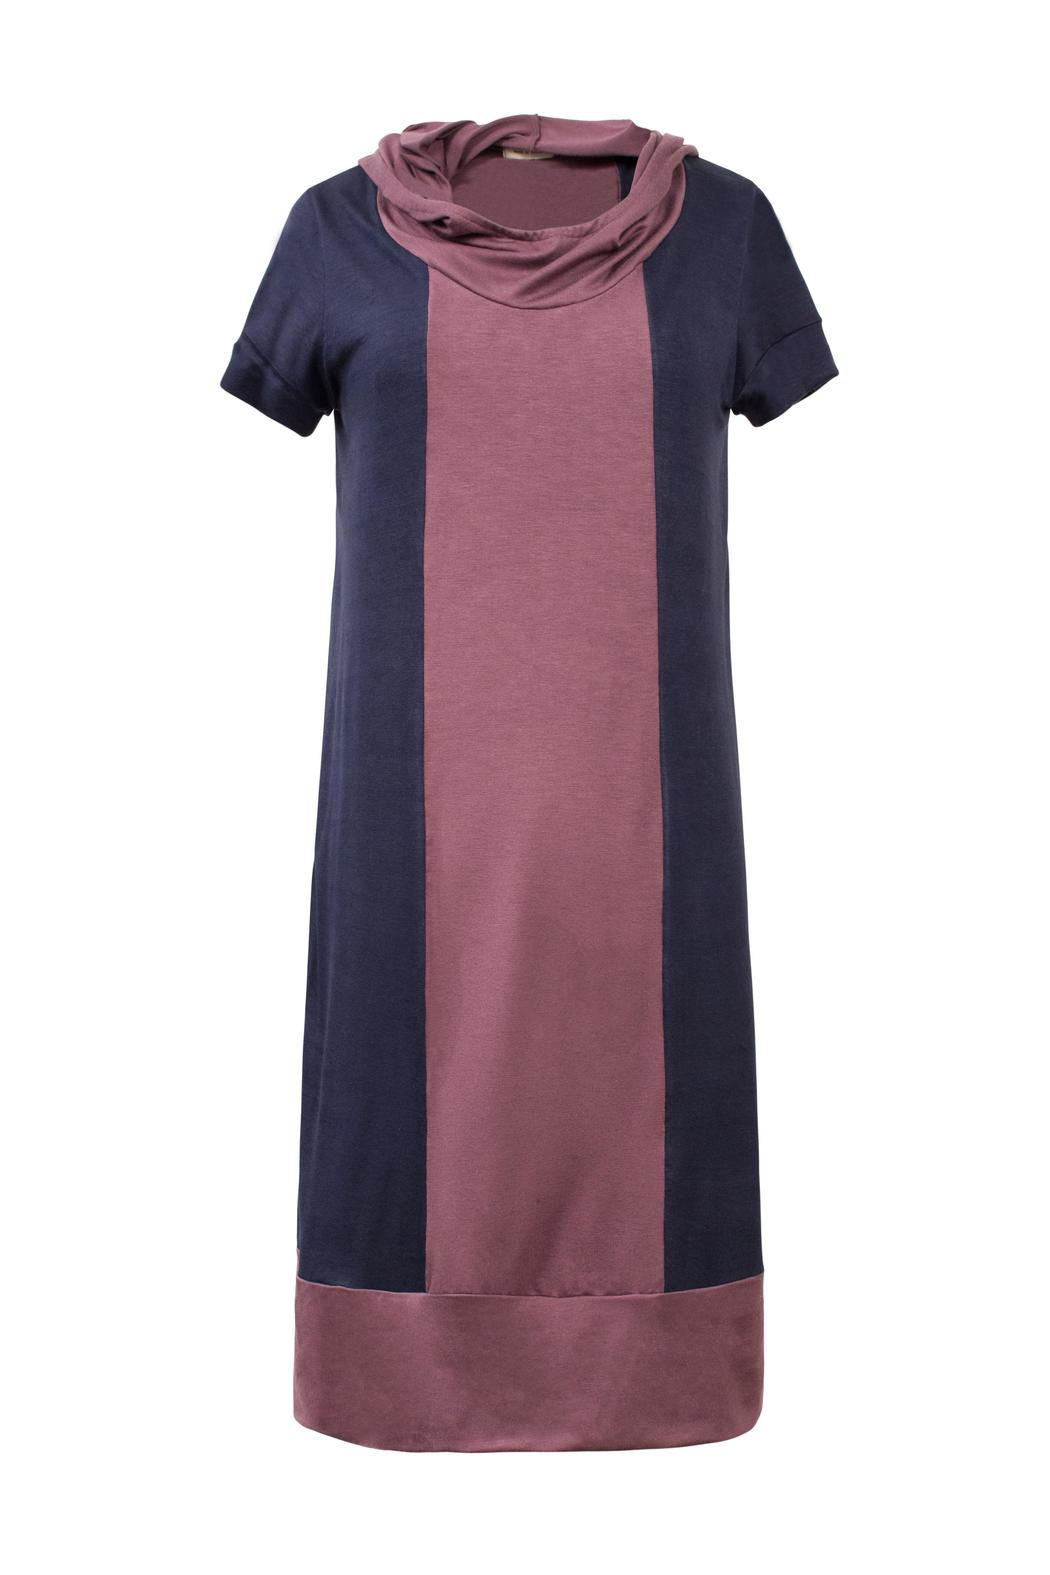 Lococina Hooded Dress - Main Image